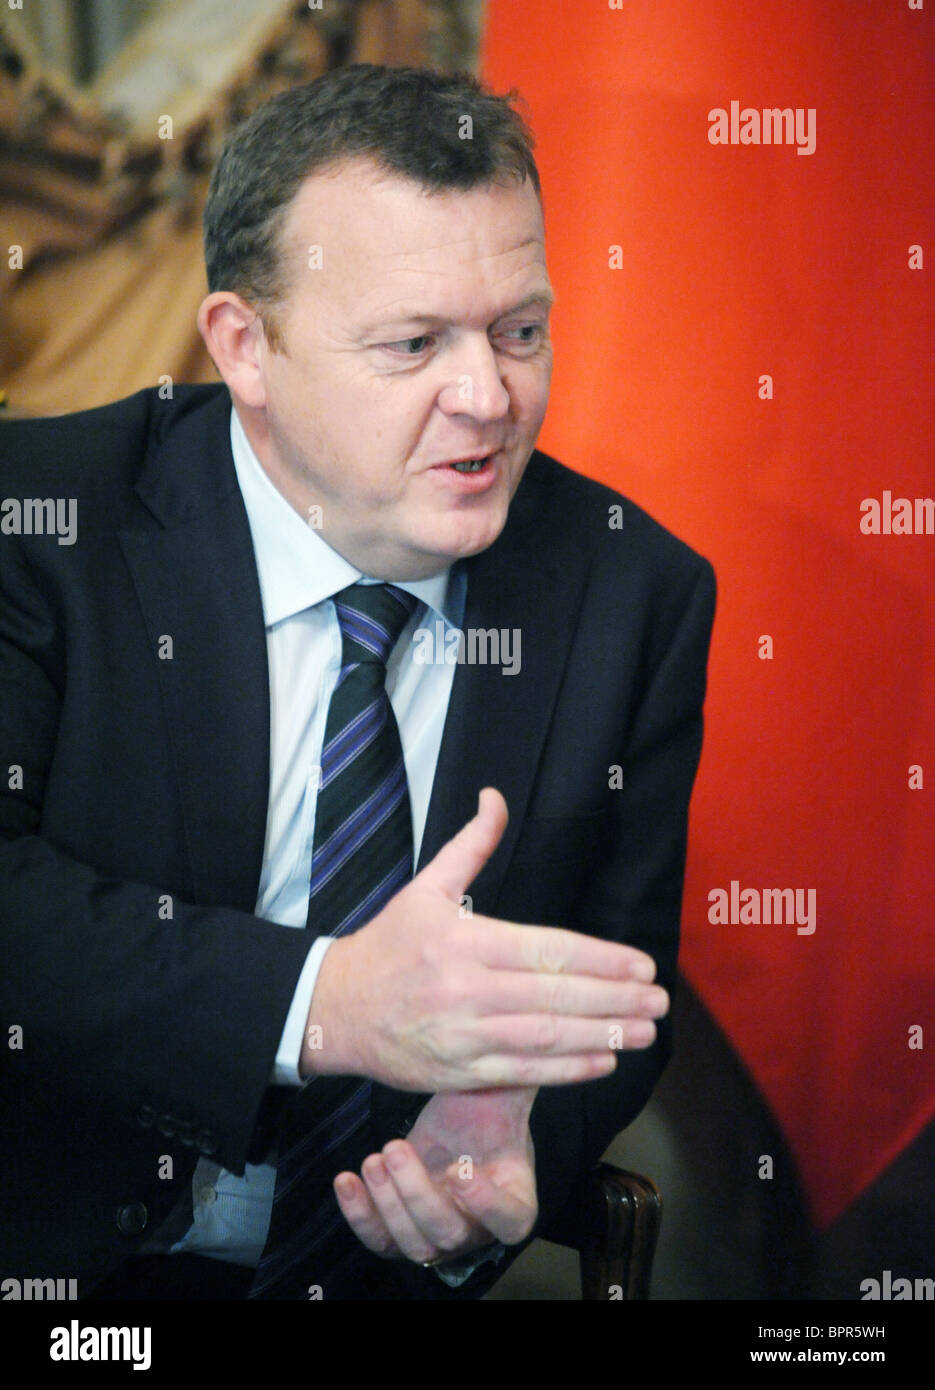 Prime ministers of Russia and Denmark meet for talks - Stock Image